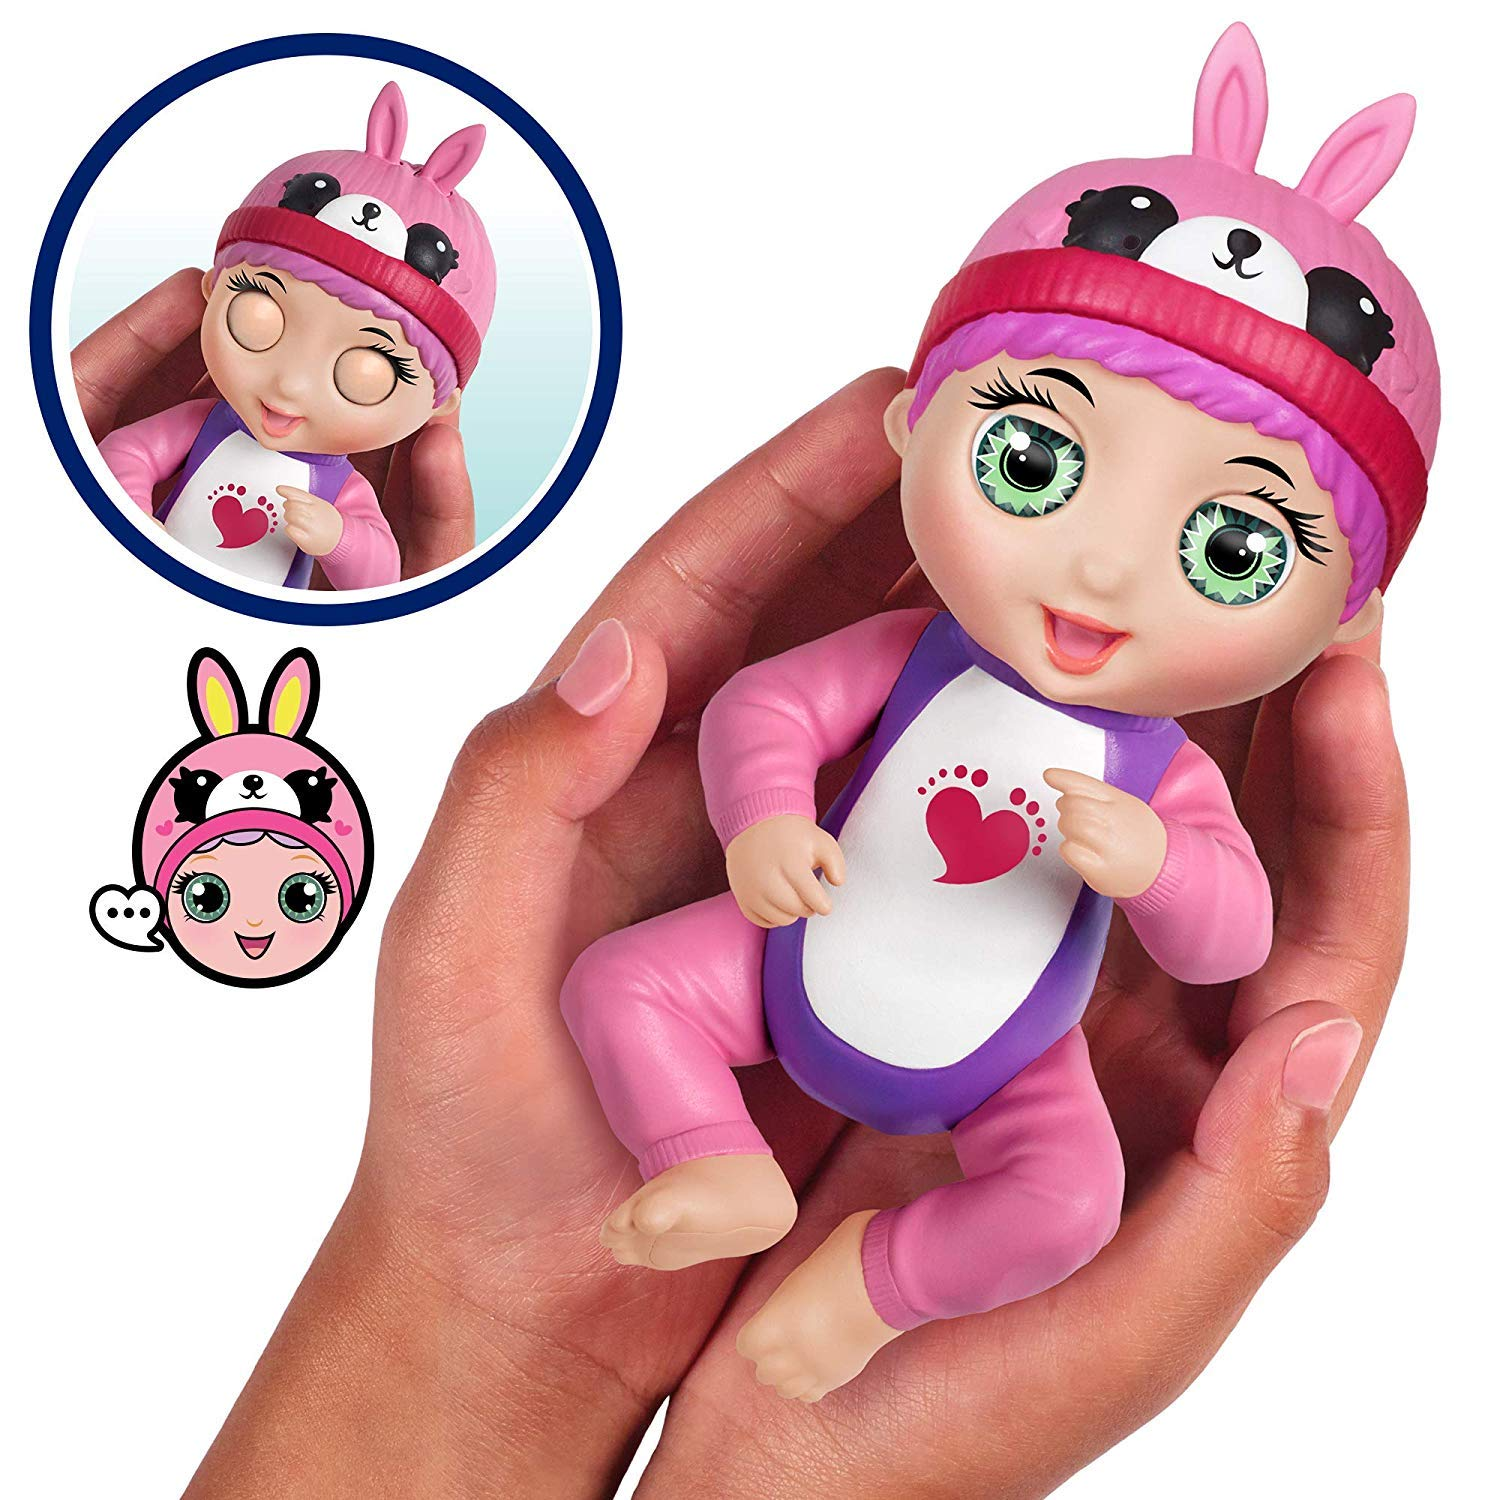 Bandai Tiny Toes Mini Interactive Doll, 82795